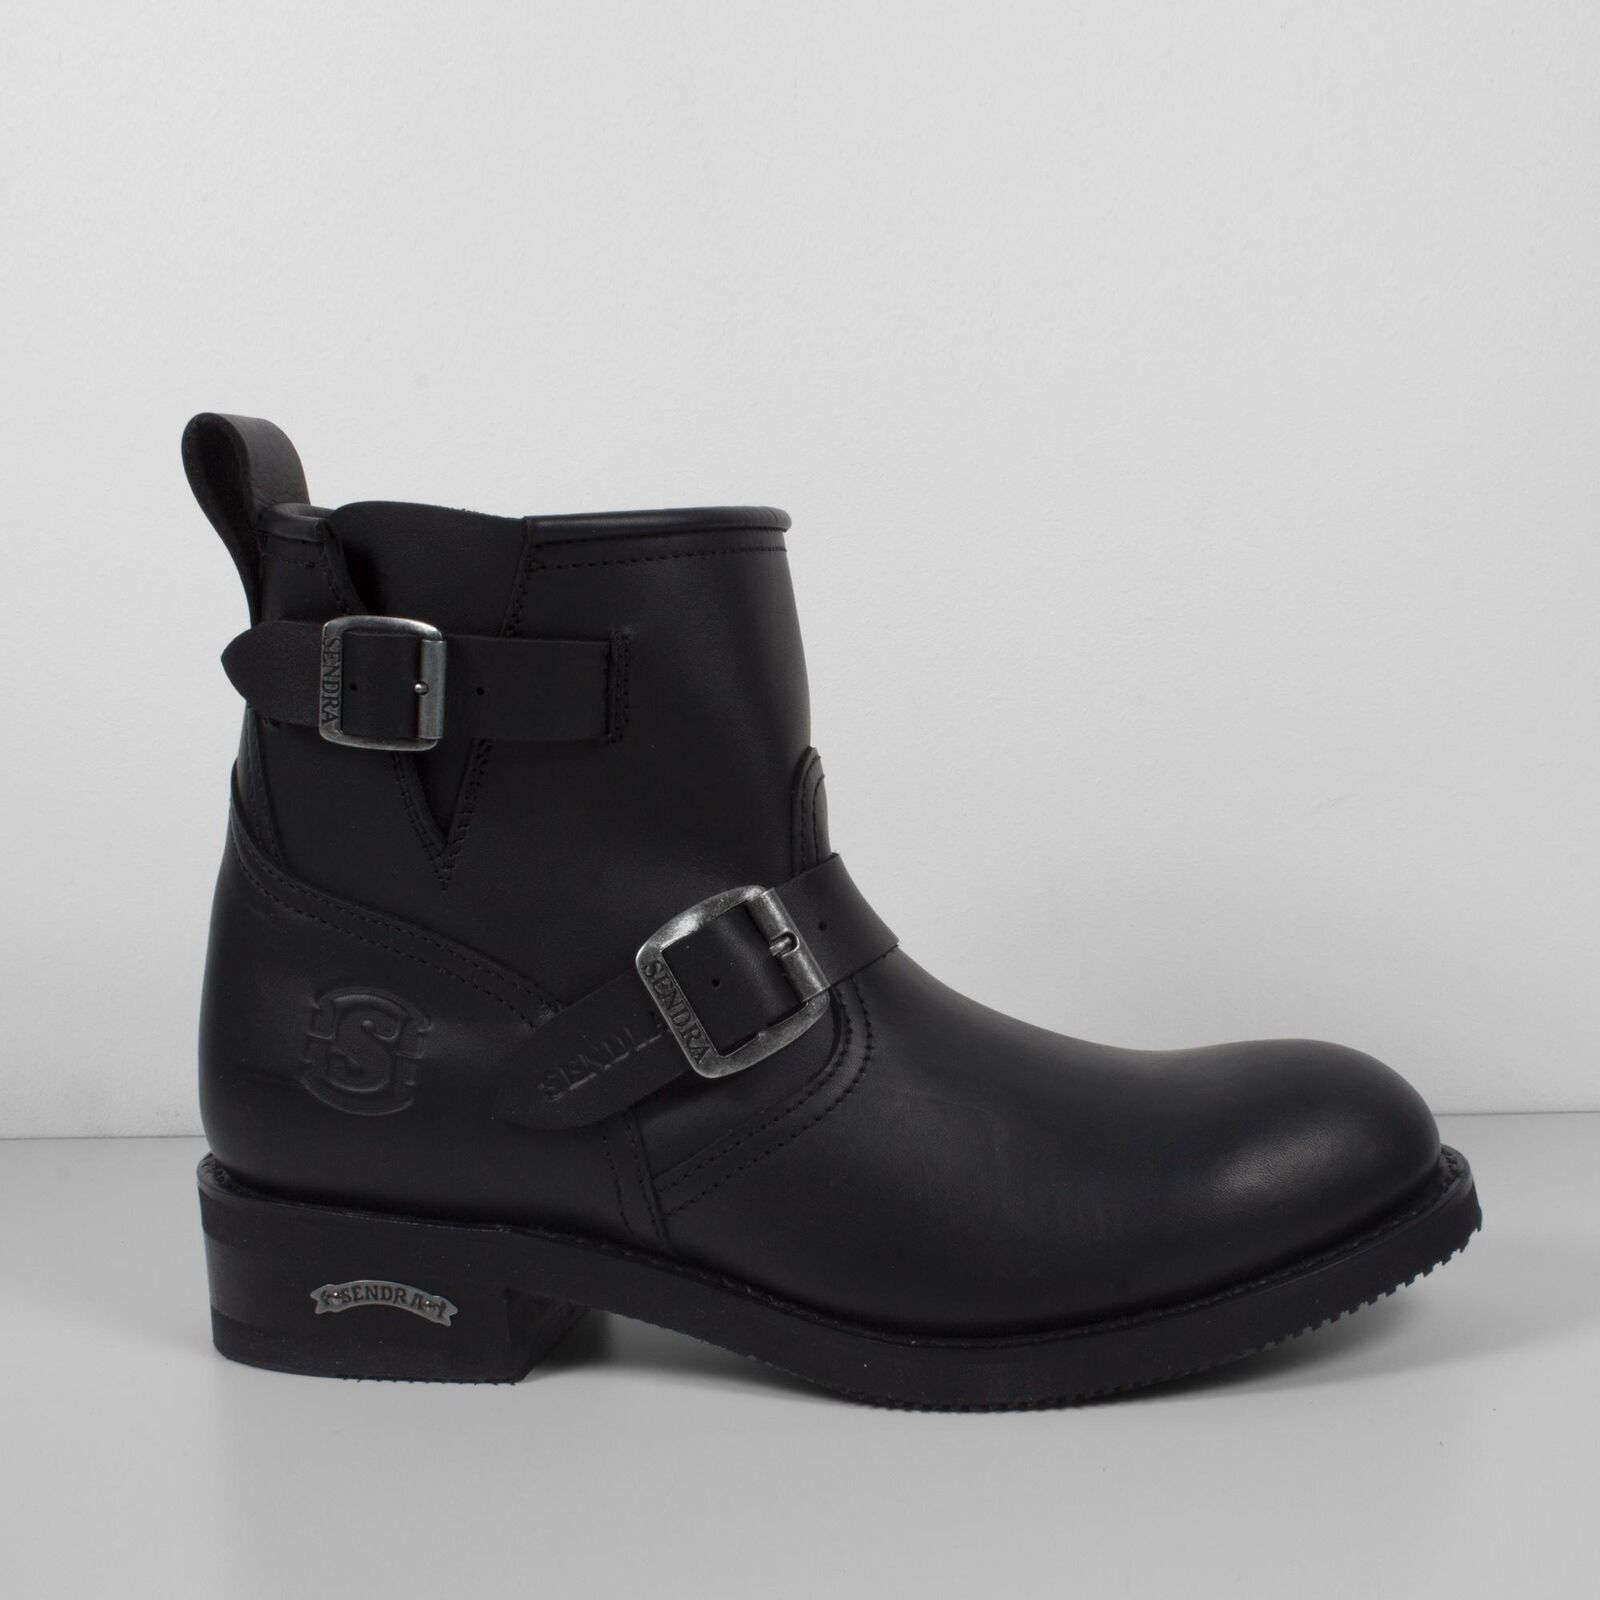 Sendra 2976 Mens Leather Motorcycle Moto Pull On Buckle Ankle Biker Boots Black